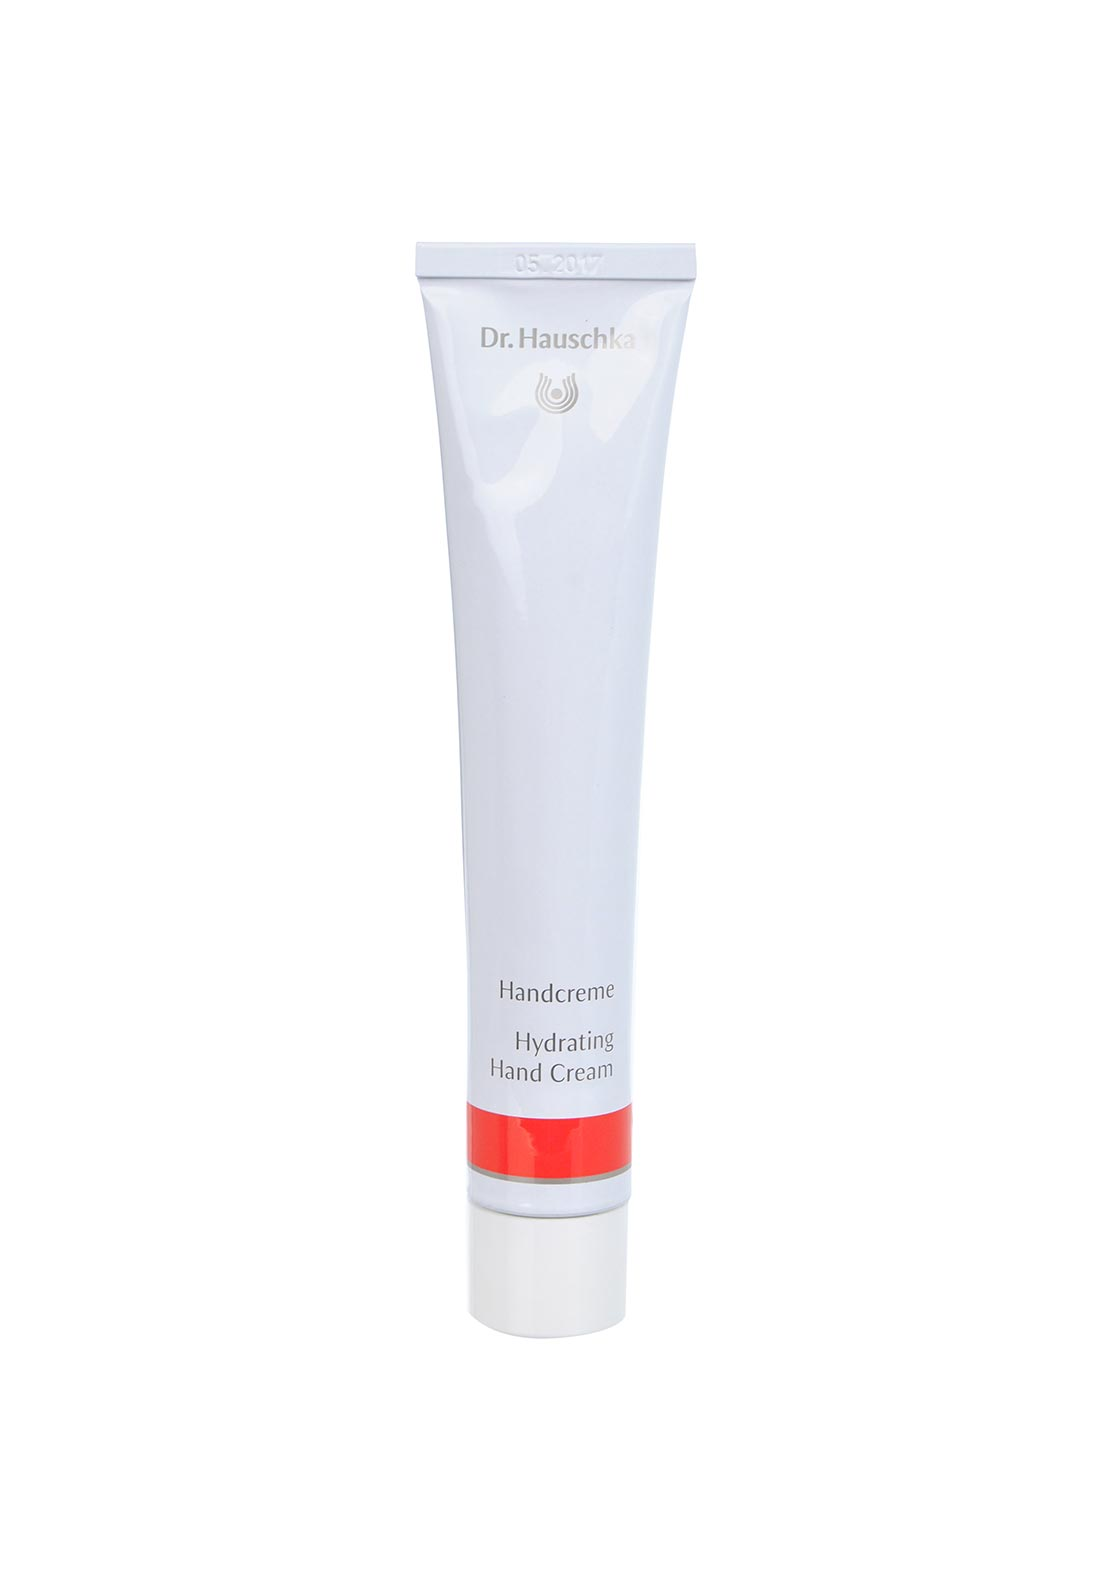 Dr. Hauschka Hydrating Hand Cream, 50ml